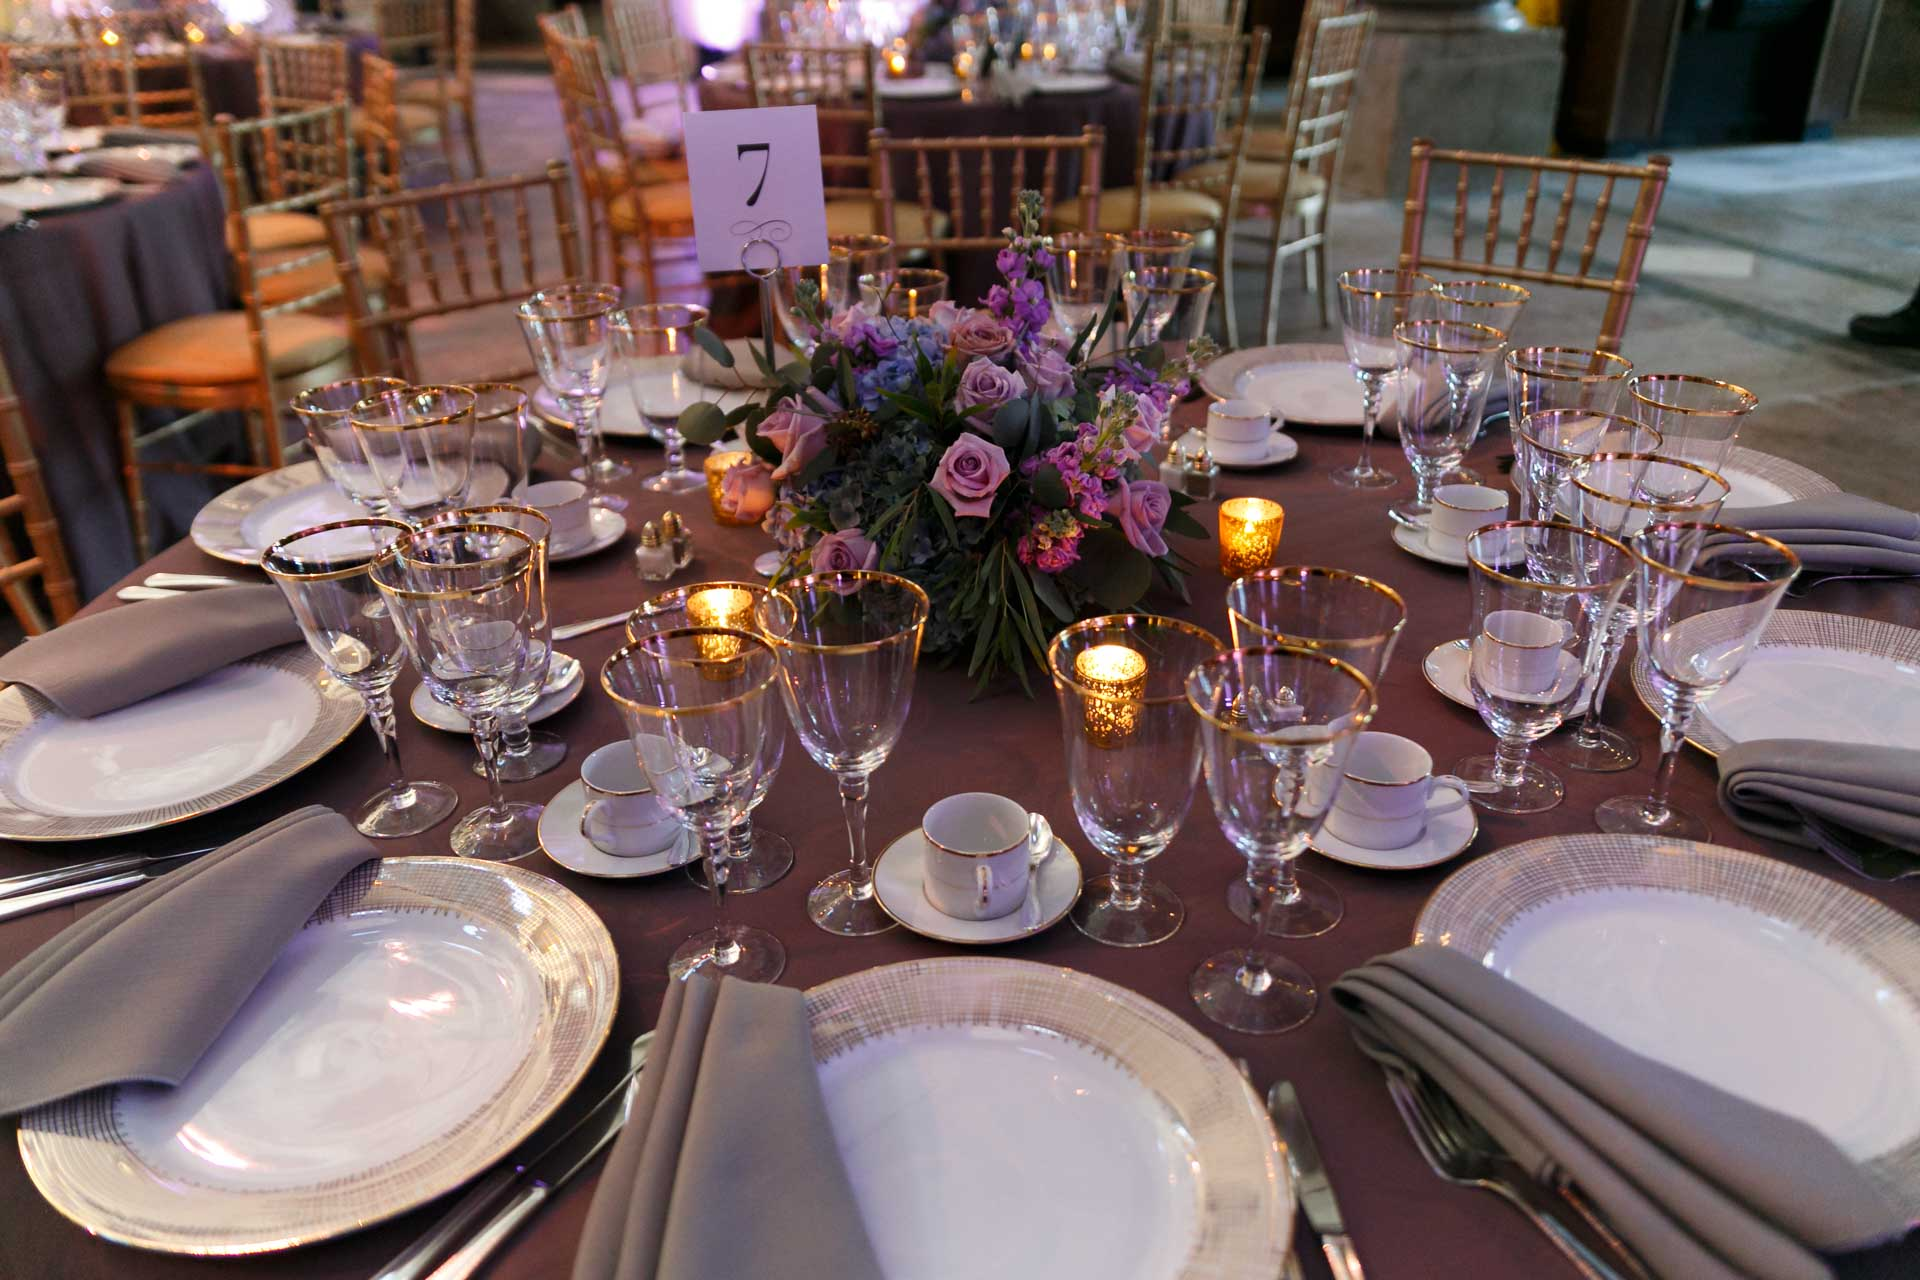 This set up was gorgeous with a perfect plum linen, gold accents and the flowers bringing in the dusty hues of blue, green and lavender. Catering and rentals by  Occasions Caterers